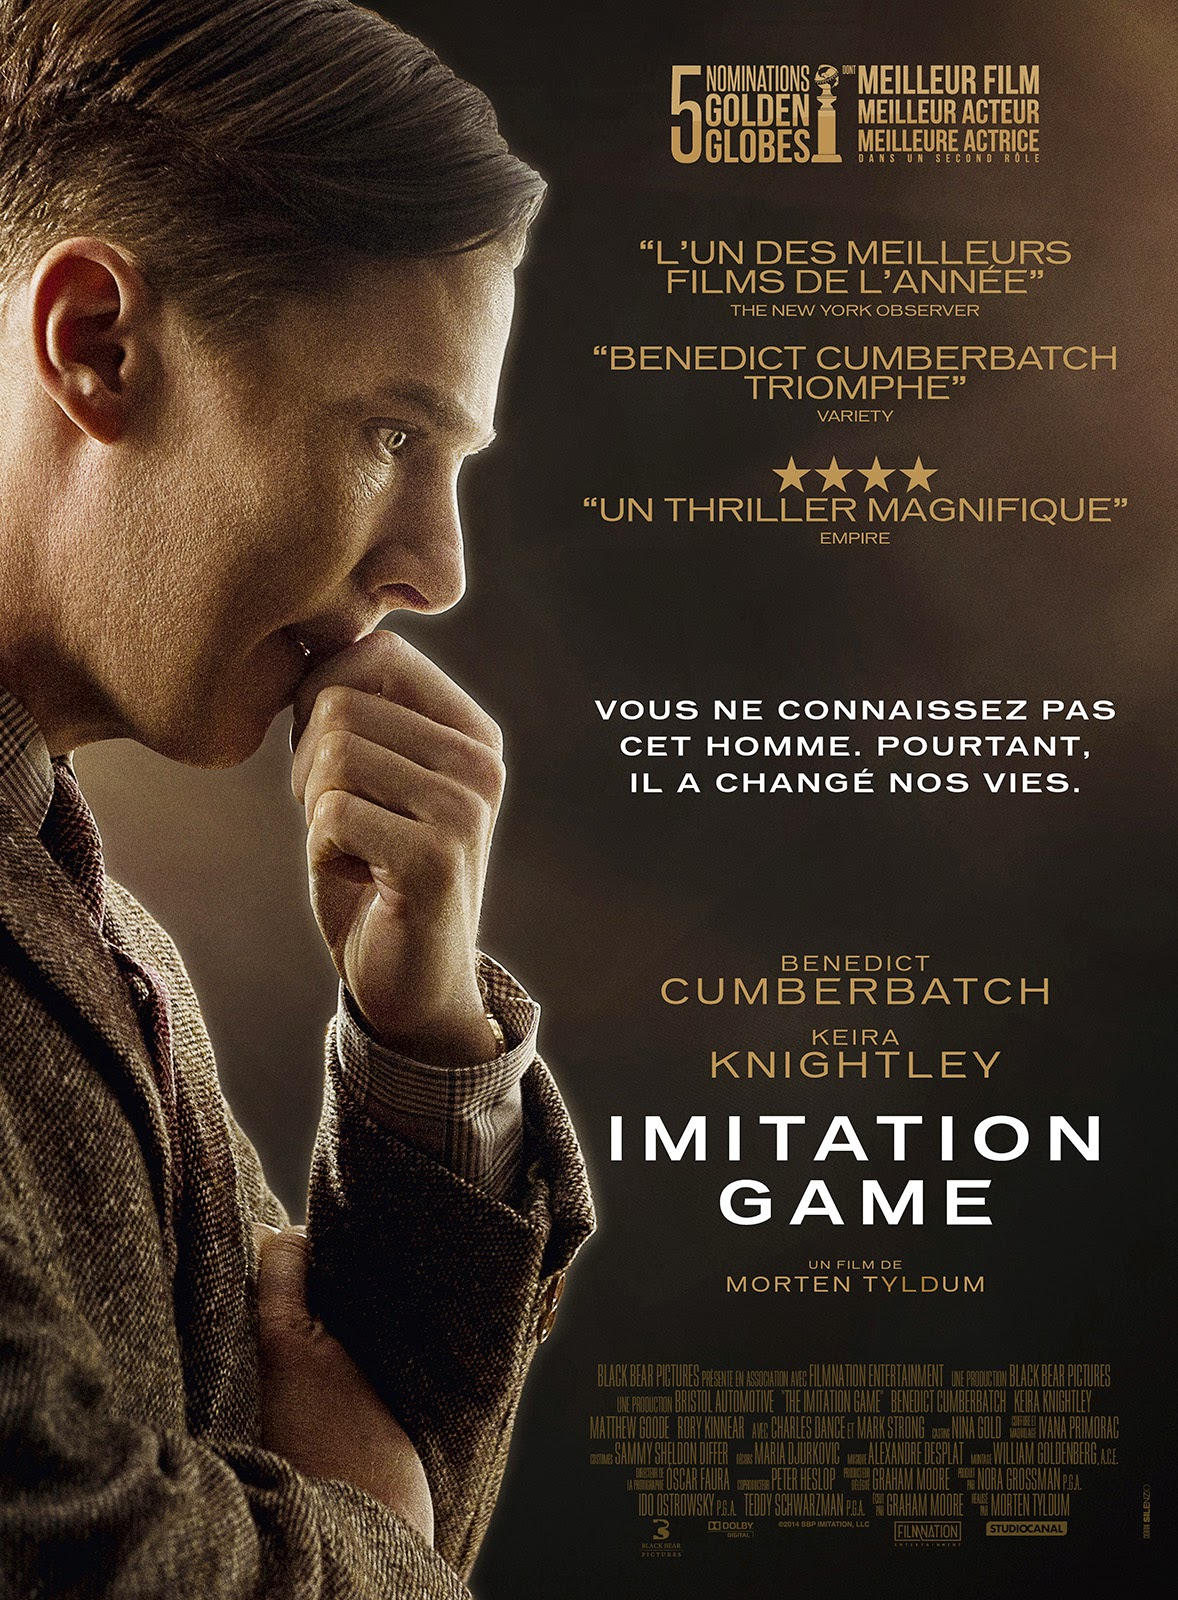 http://fuckingcinephiles.blogspot.fr/2015/01/critique-imitation-game.html